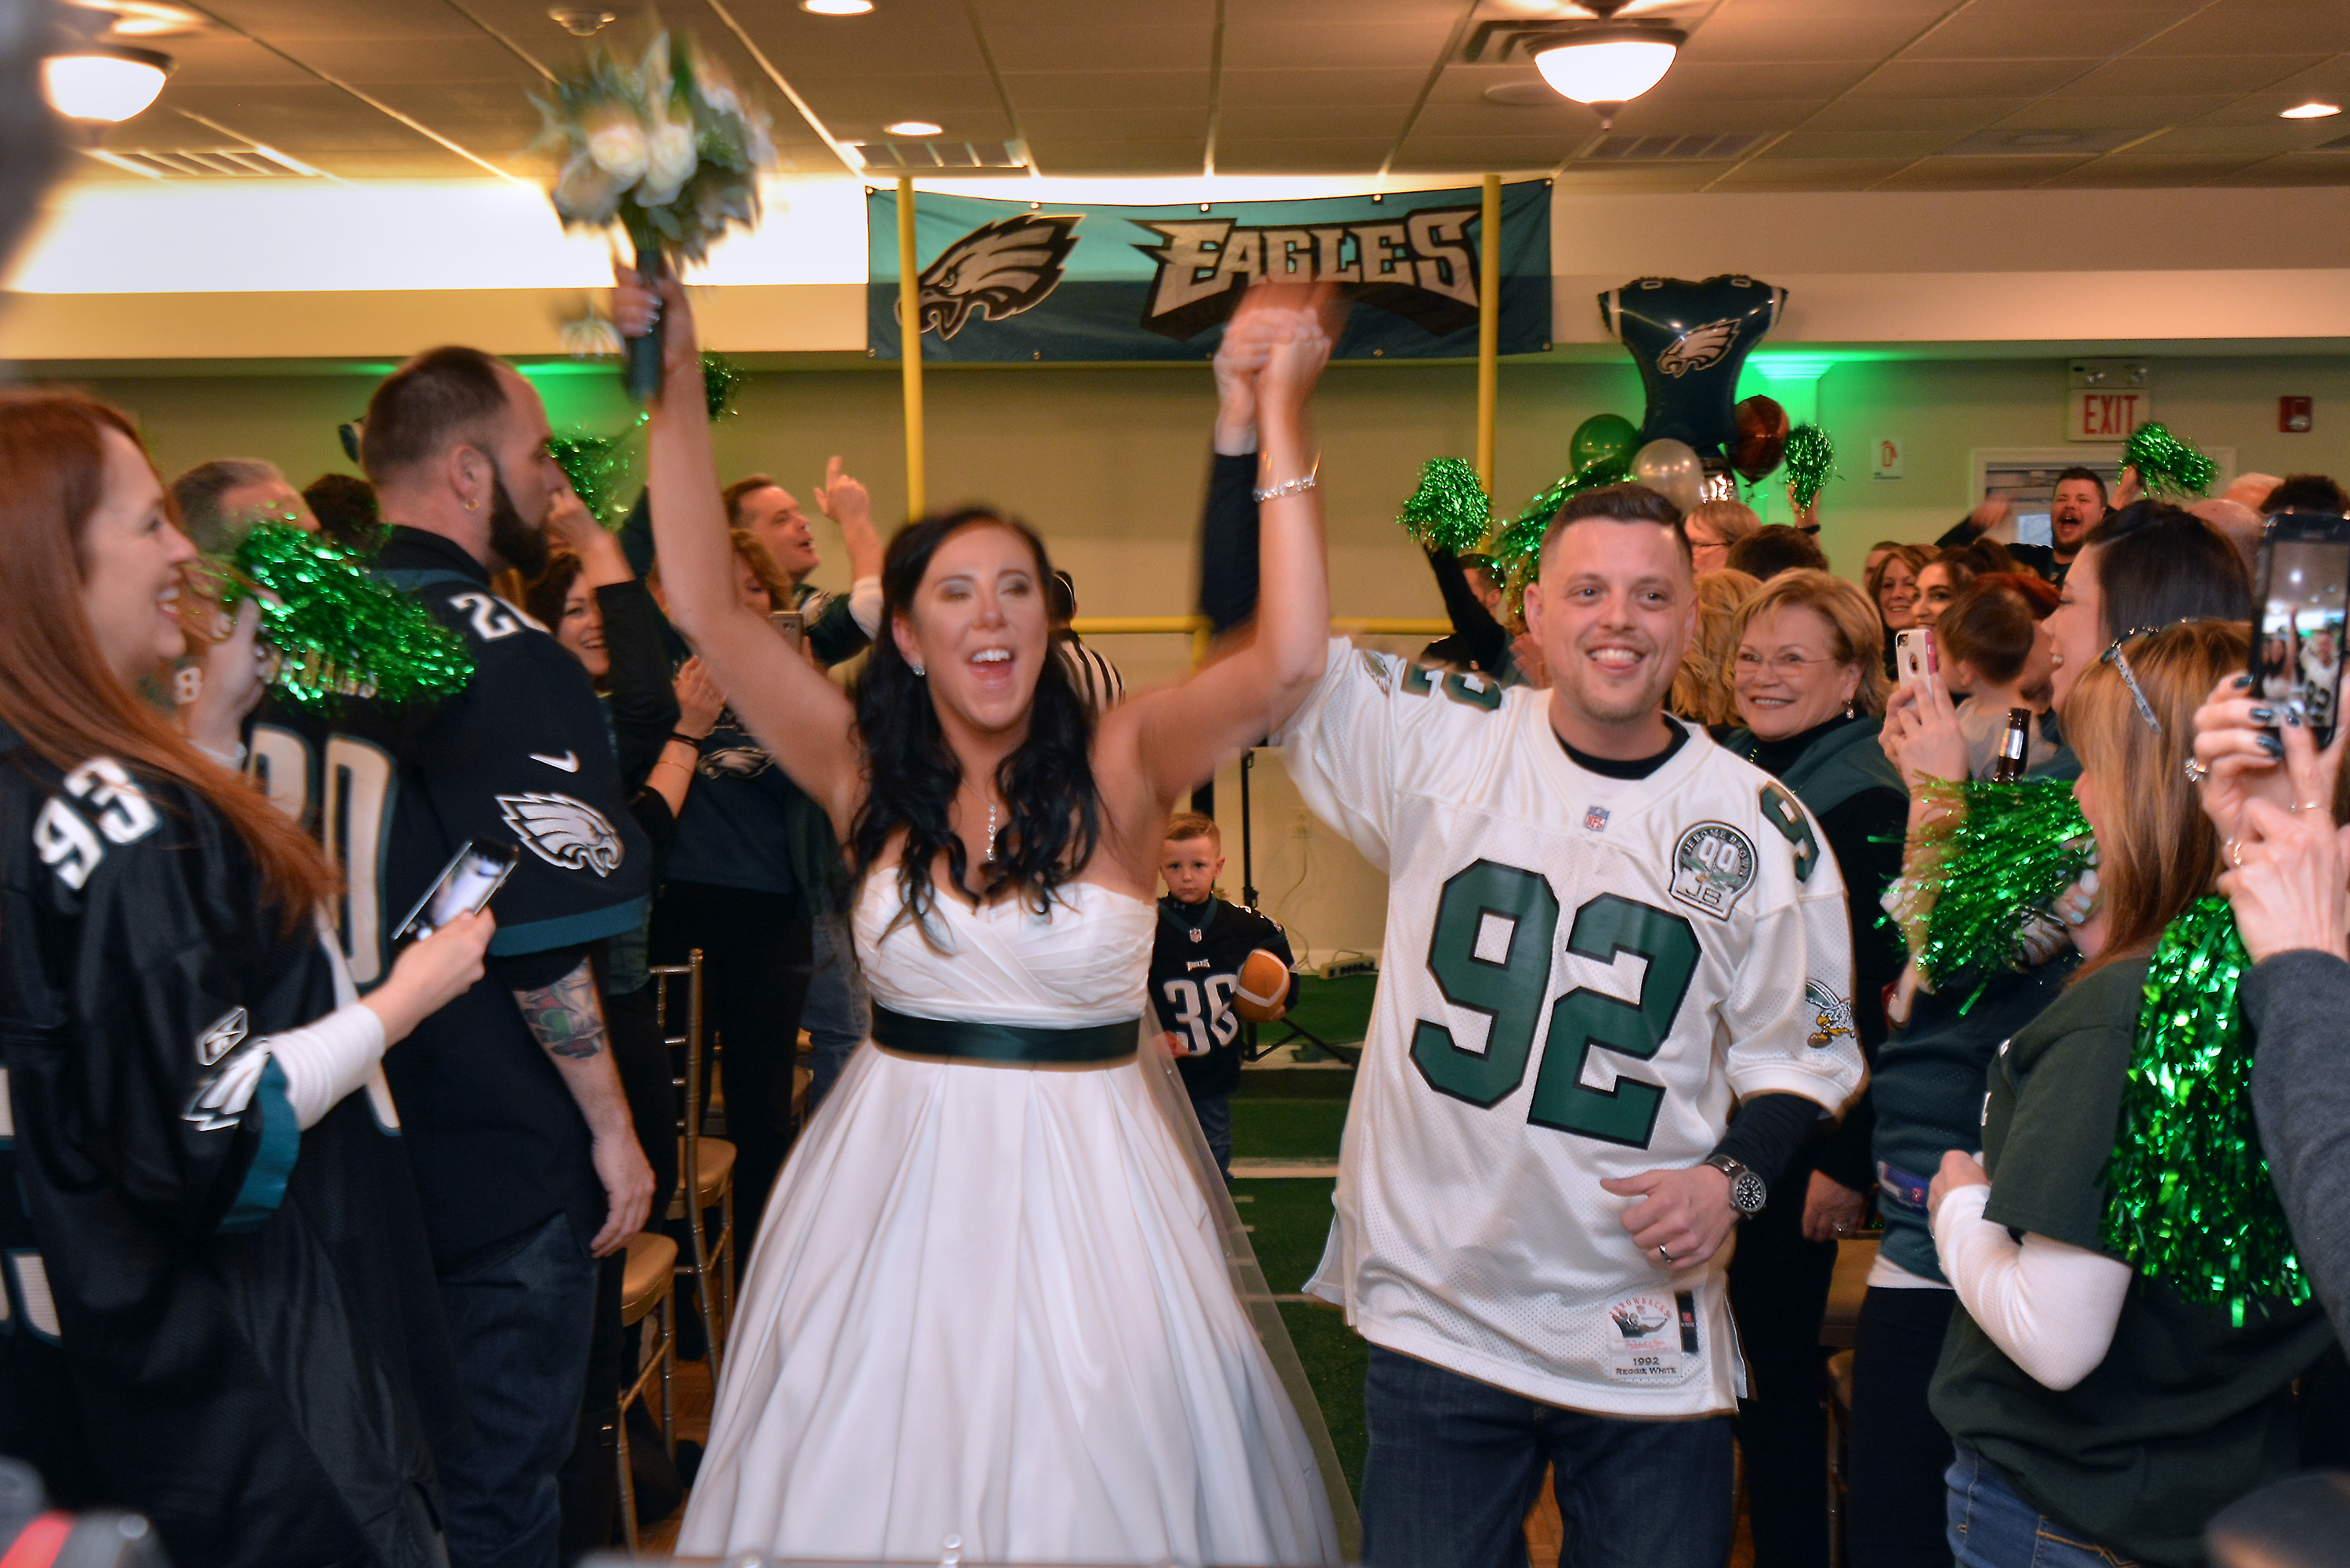 Newlyweds Sabrina Seneca and Christian Regalbuto rejoice as they walk up the aisle after their vows in their Eagles themed wedding at the Bensalem Country Club on Sunday 4,2018. Mark C Psoras/For the Inquirer